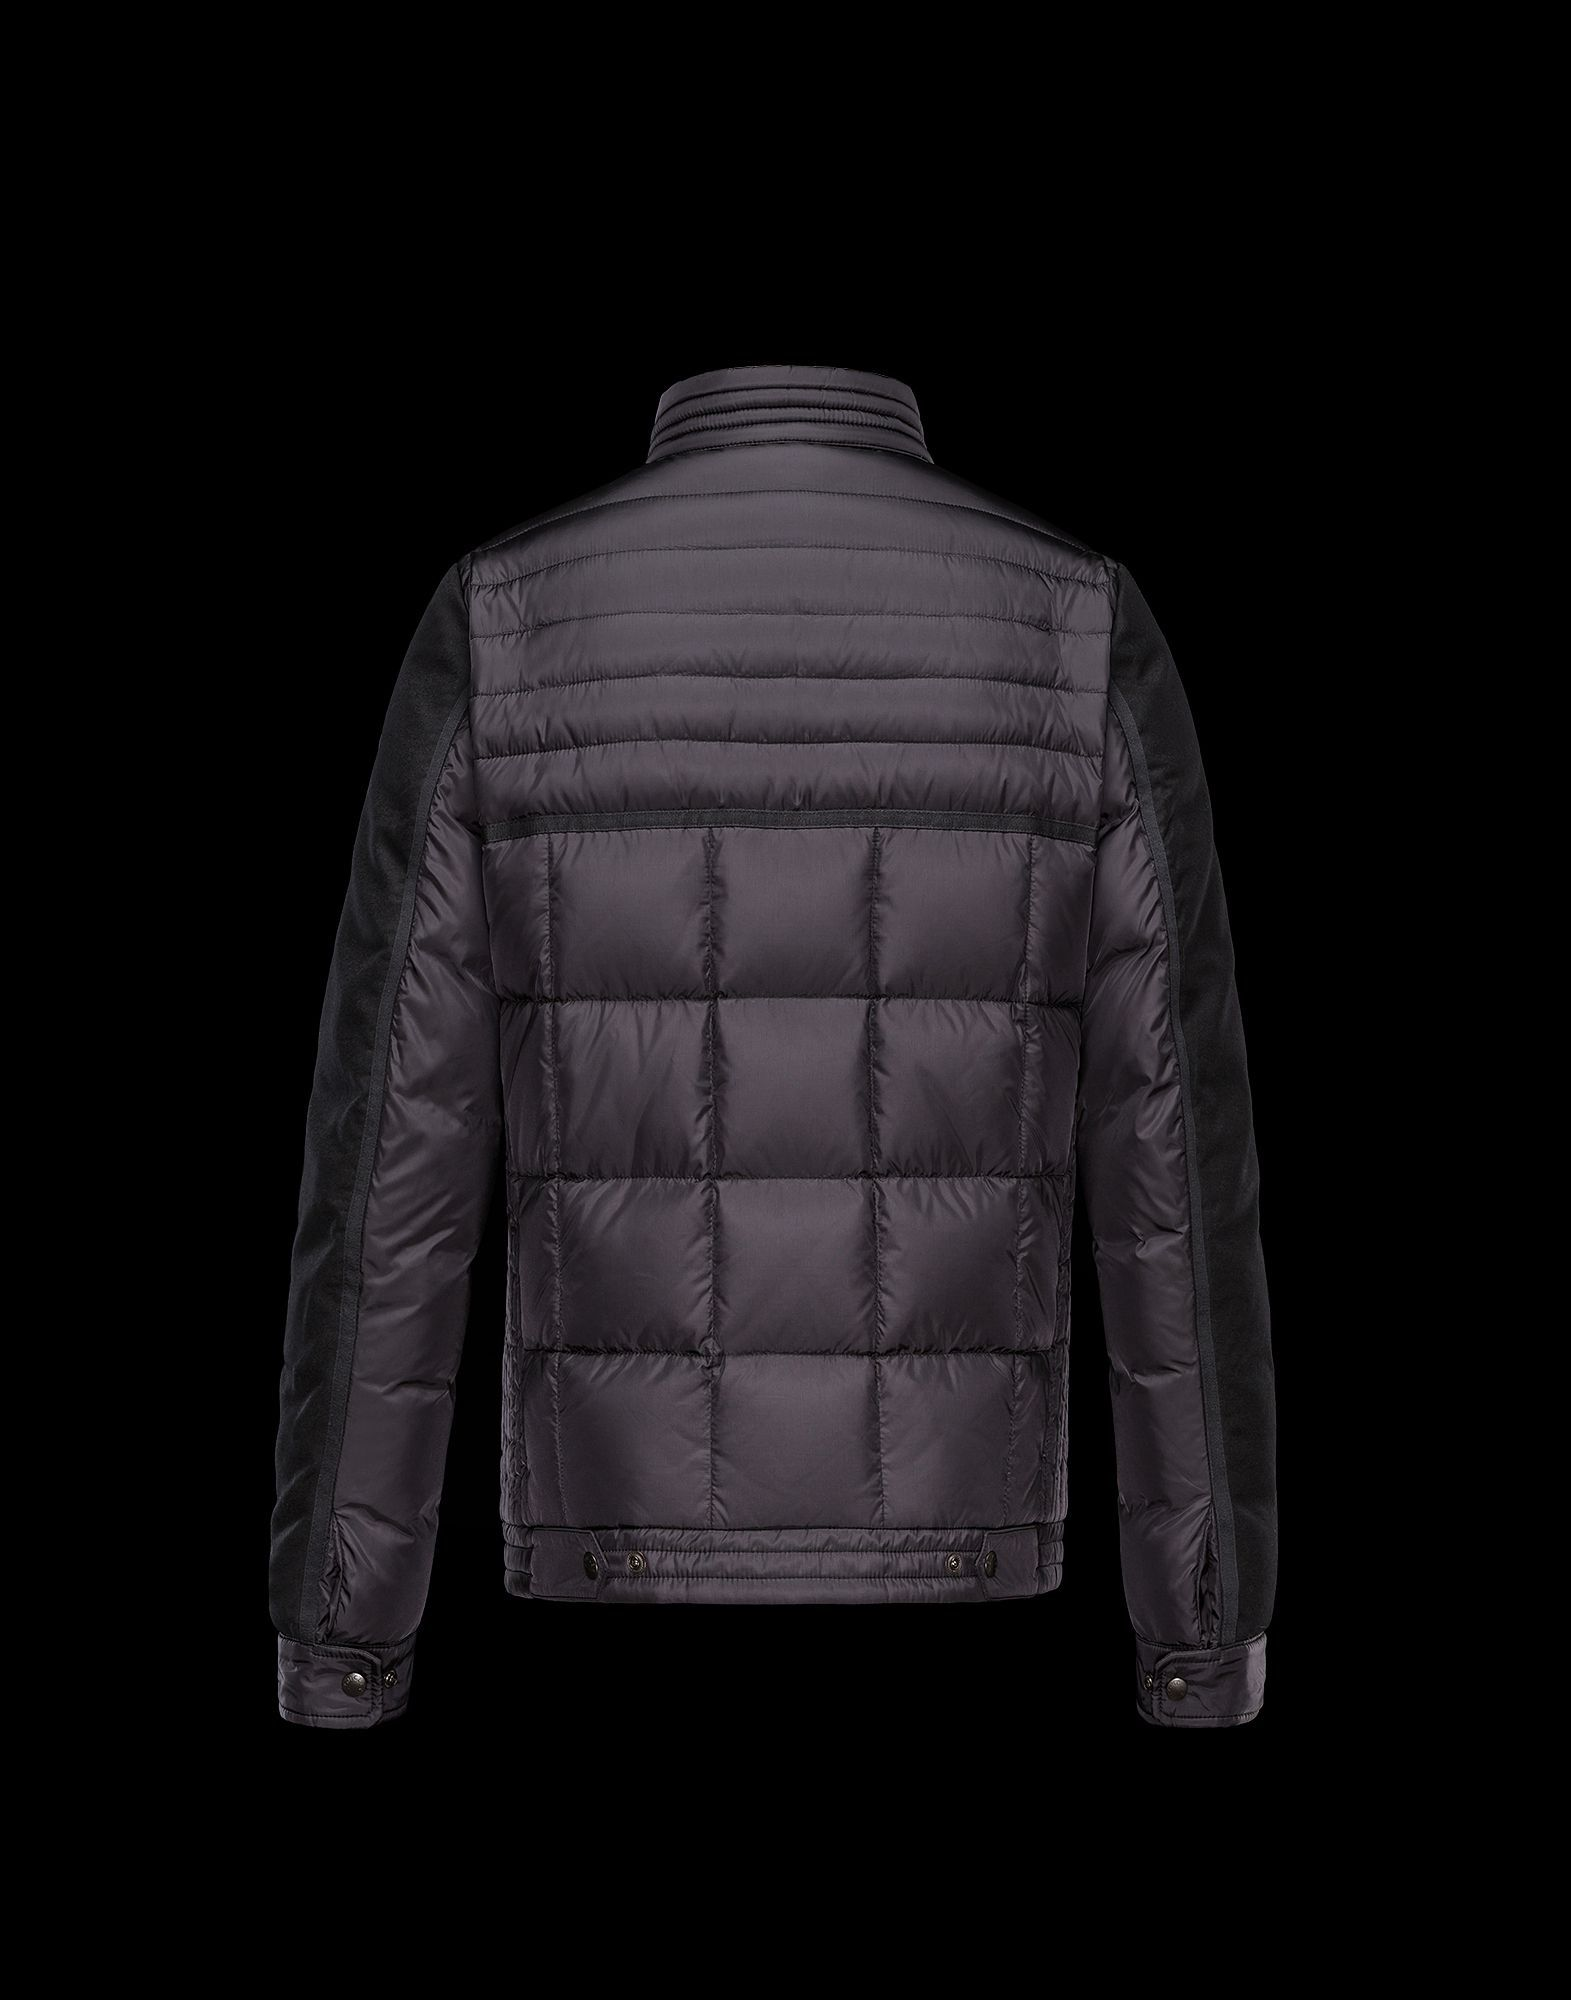 Clothing and down jackets for men women and kids Jackets